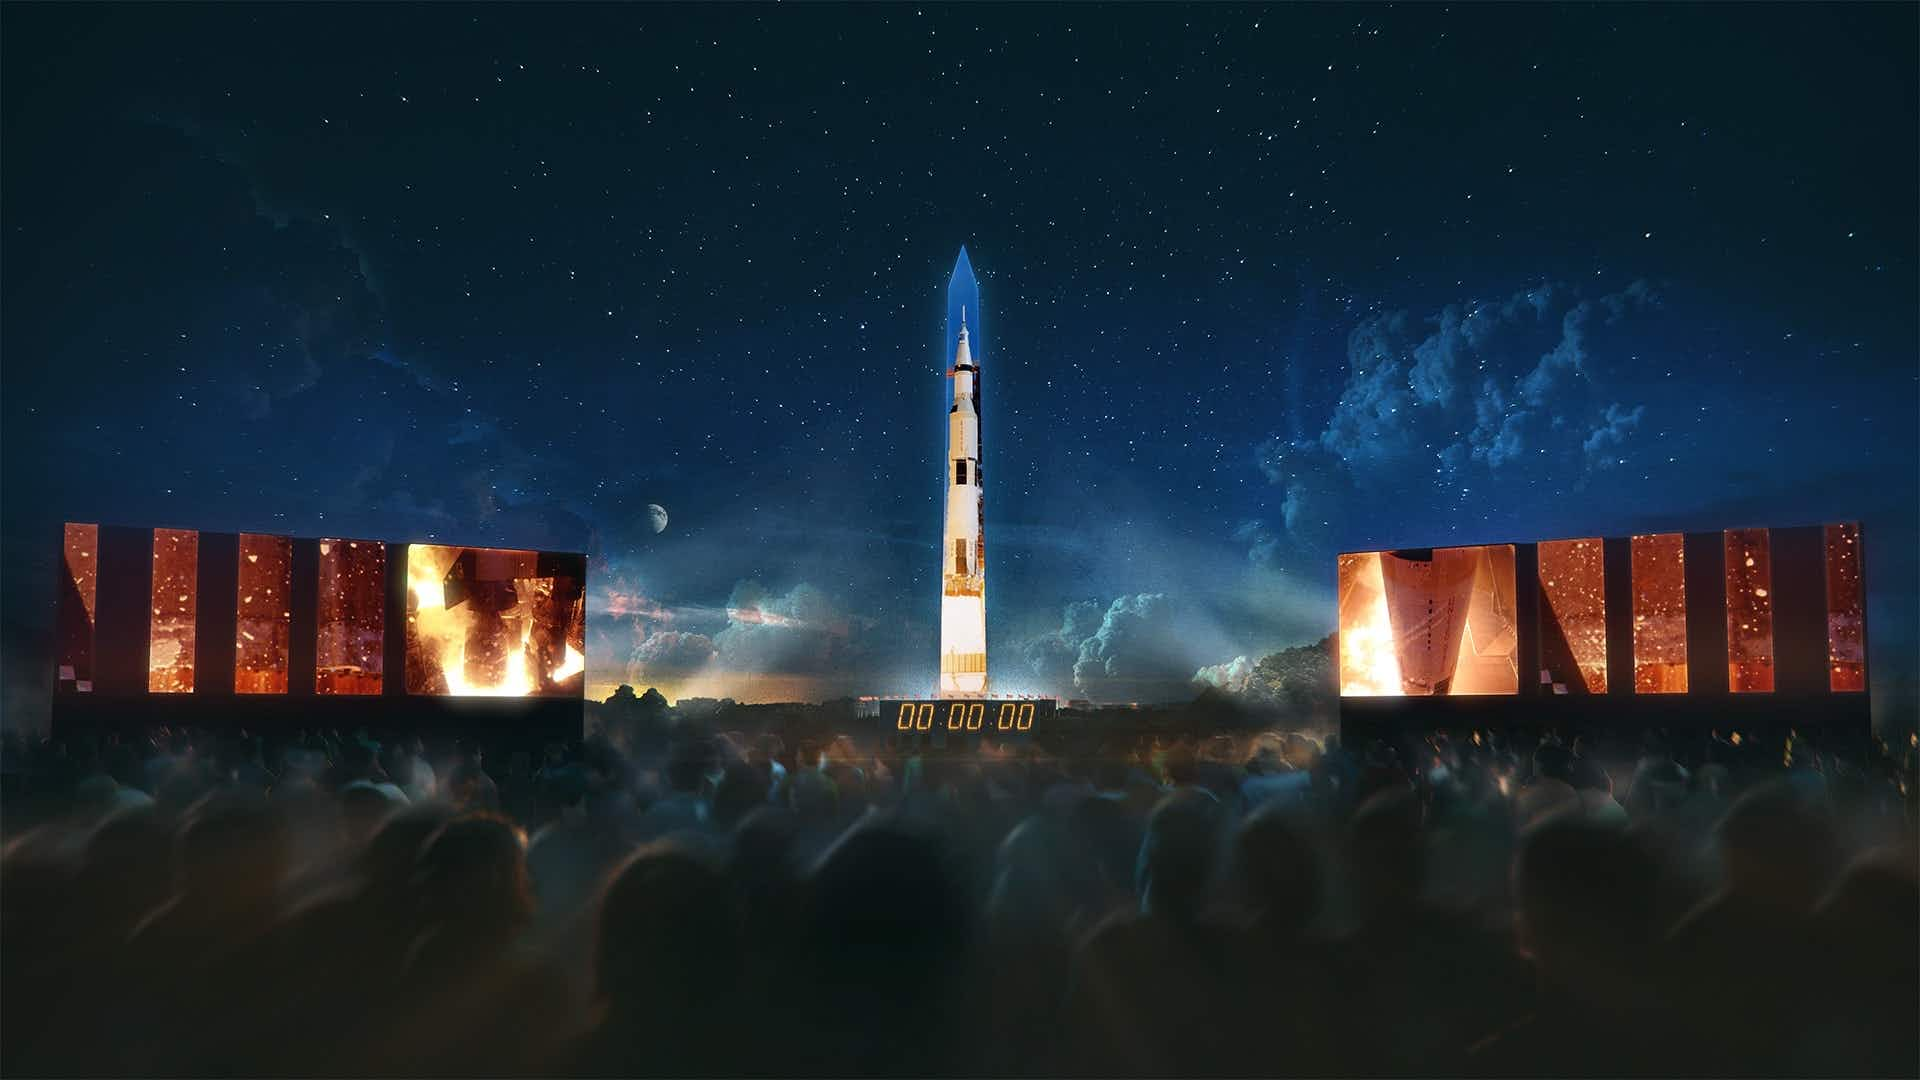 Celebrate the anniversary of the Apollo 11 lunar landing at NASA events around the USA